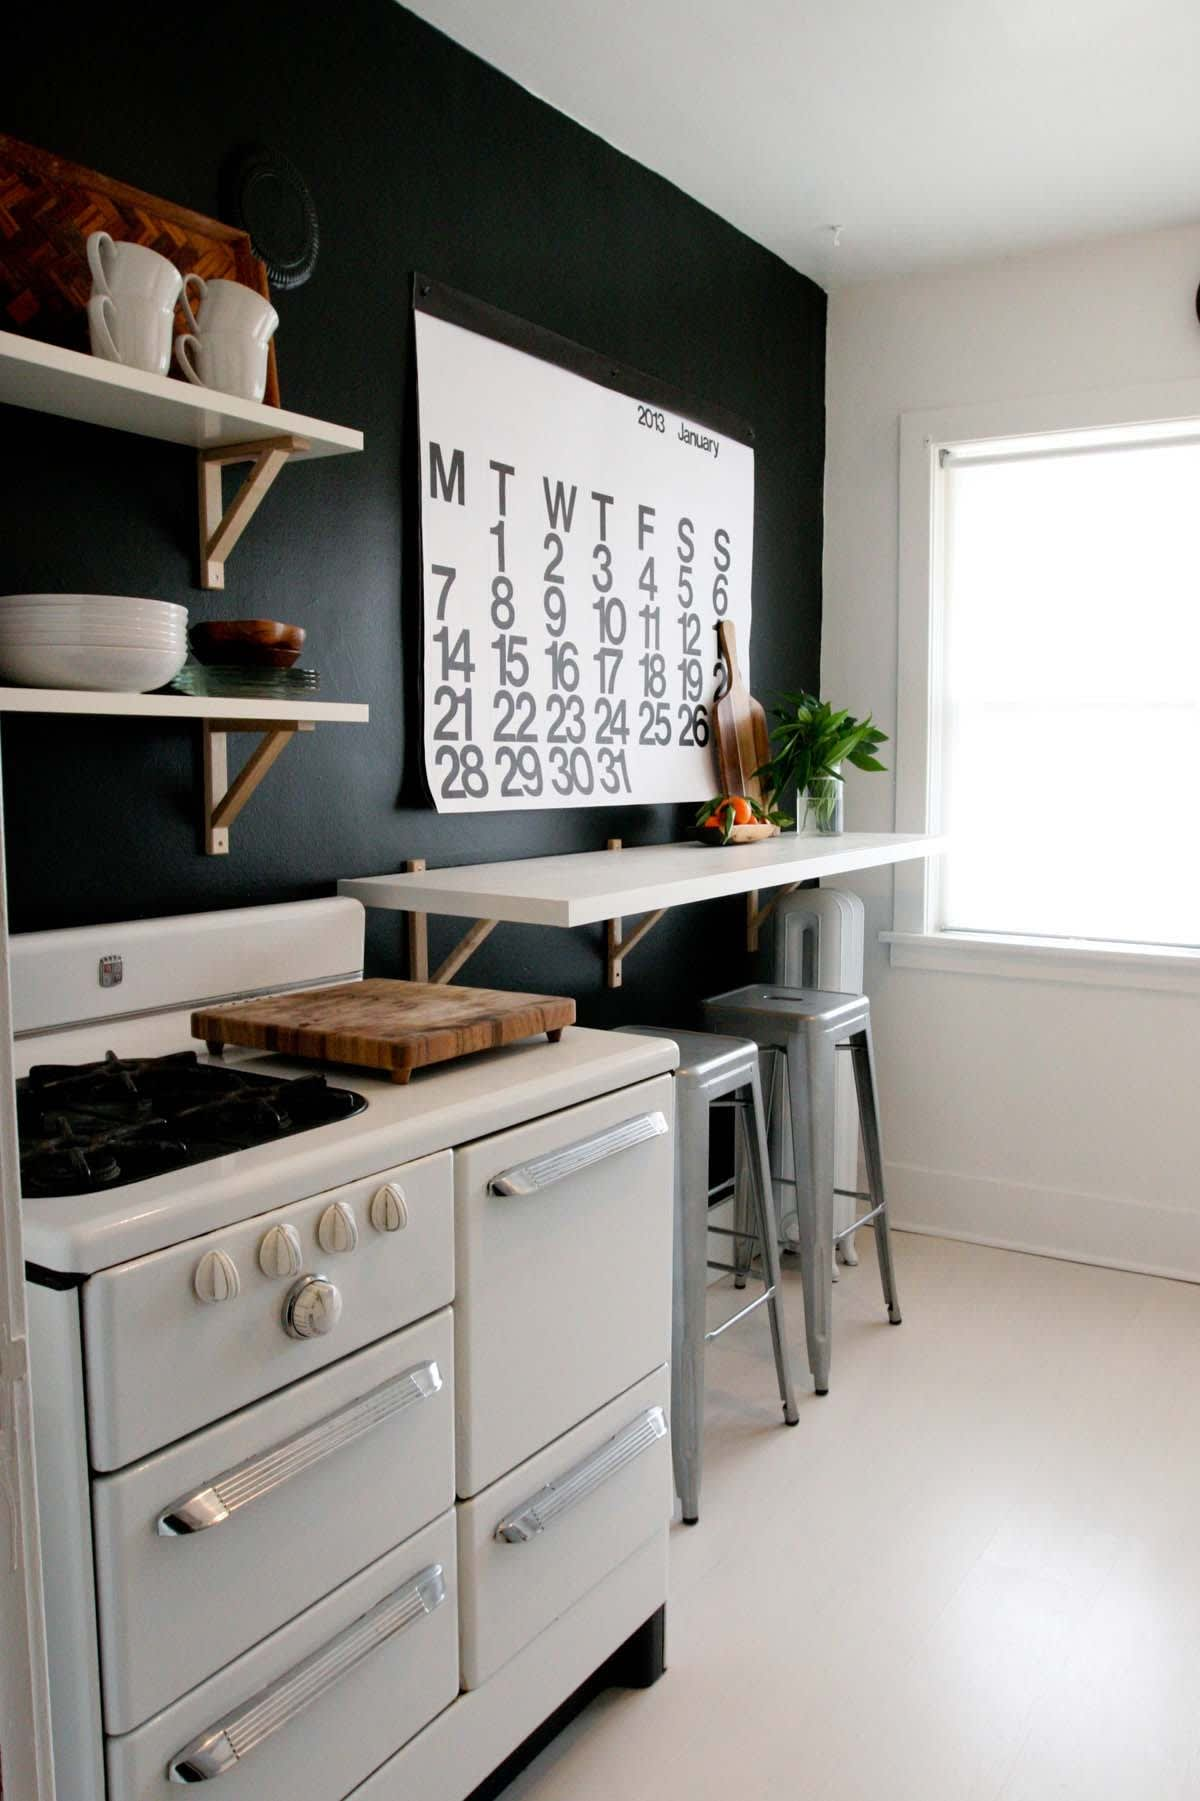 Black Kitchens Are Not Spooky. Here Are 5 That Prove It.: gallery image 4